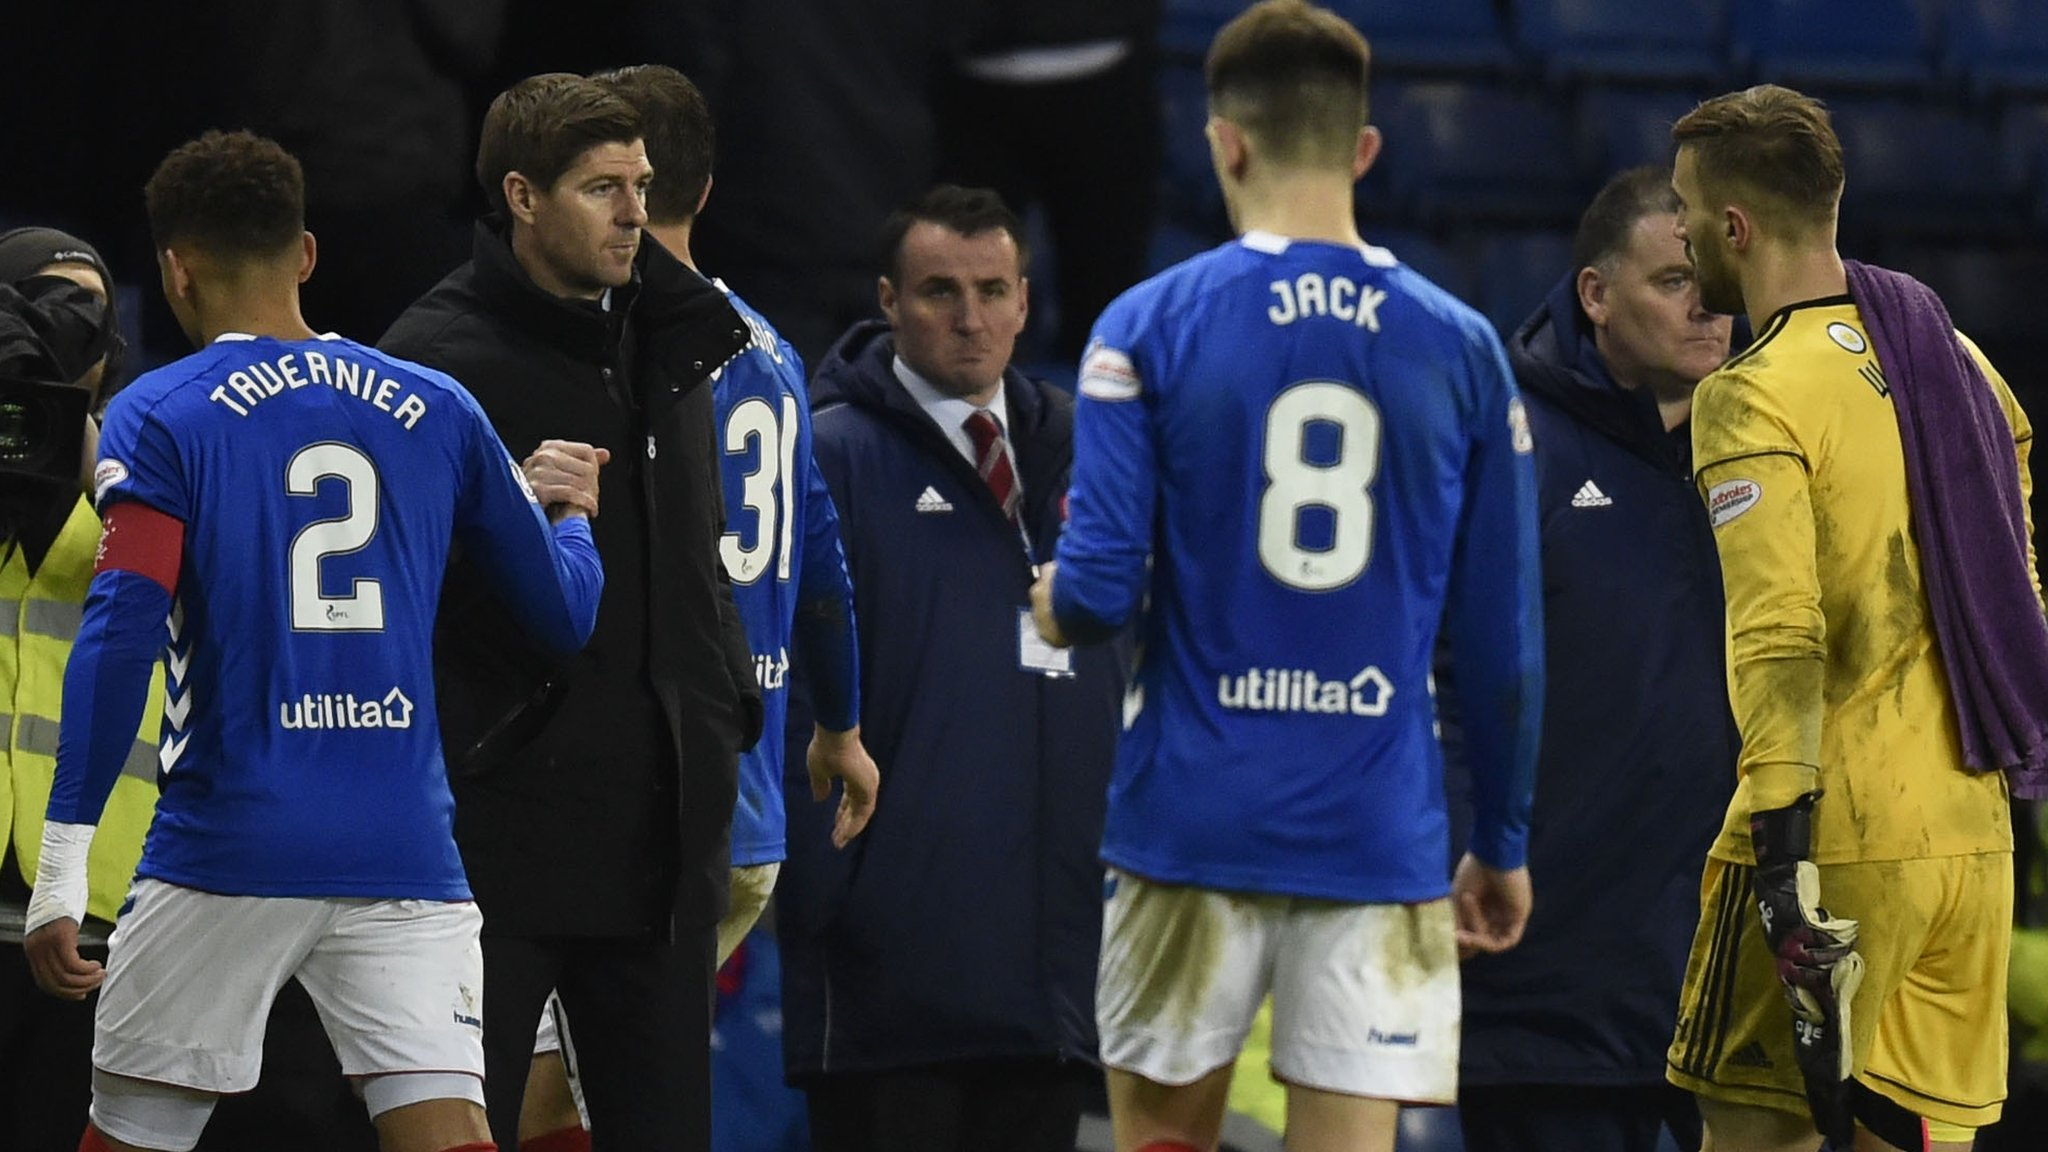 Rangers 1-0 Hamilton: Steven Gerrard 'not interested' in going top of the table